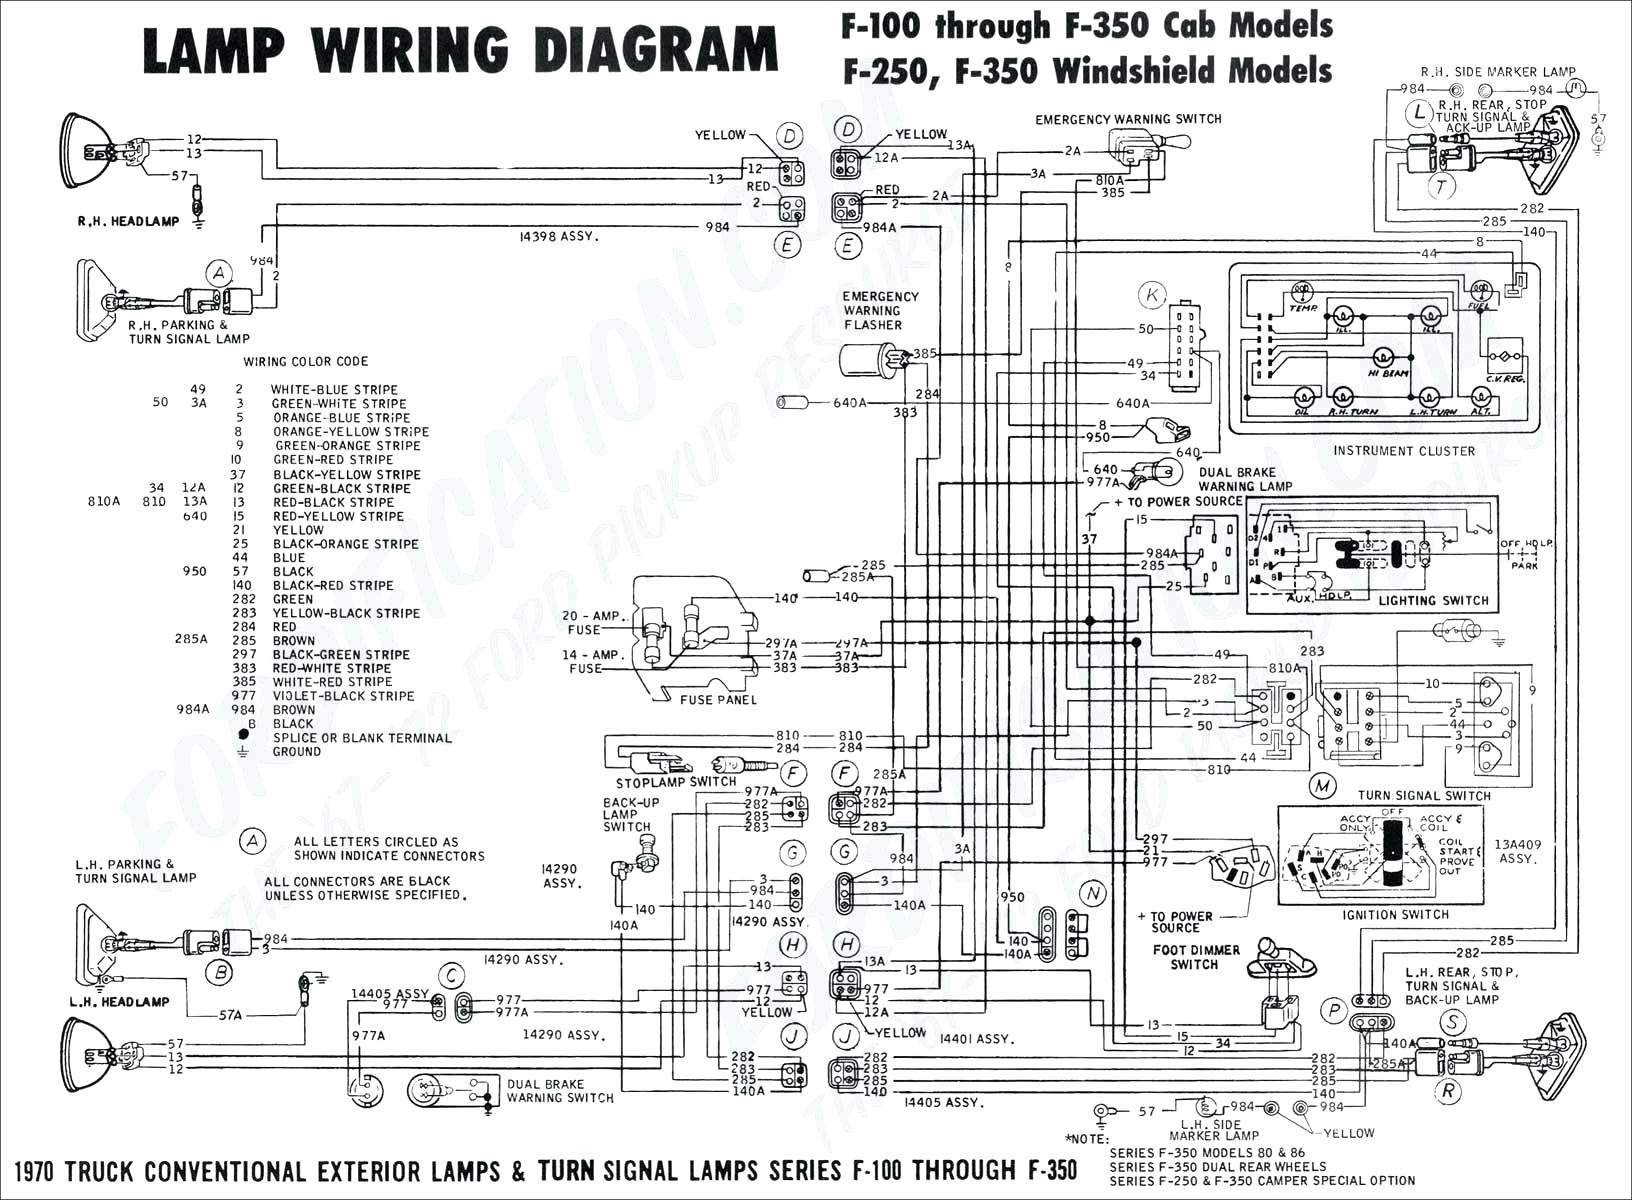 Hoffberg Alternator Wiring Diagram - Wiring Diagram Schema - 3 Wire Alternator Wiring Diagram